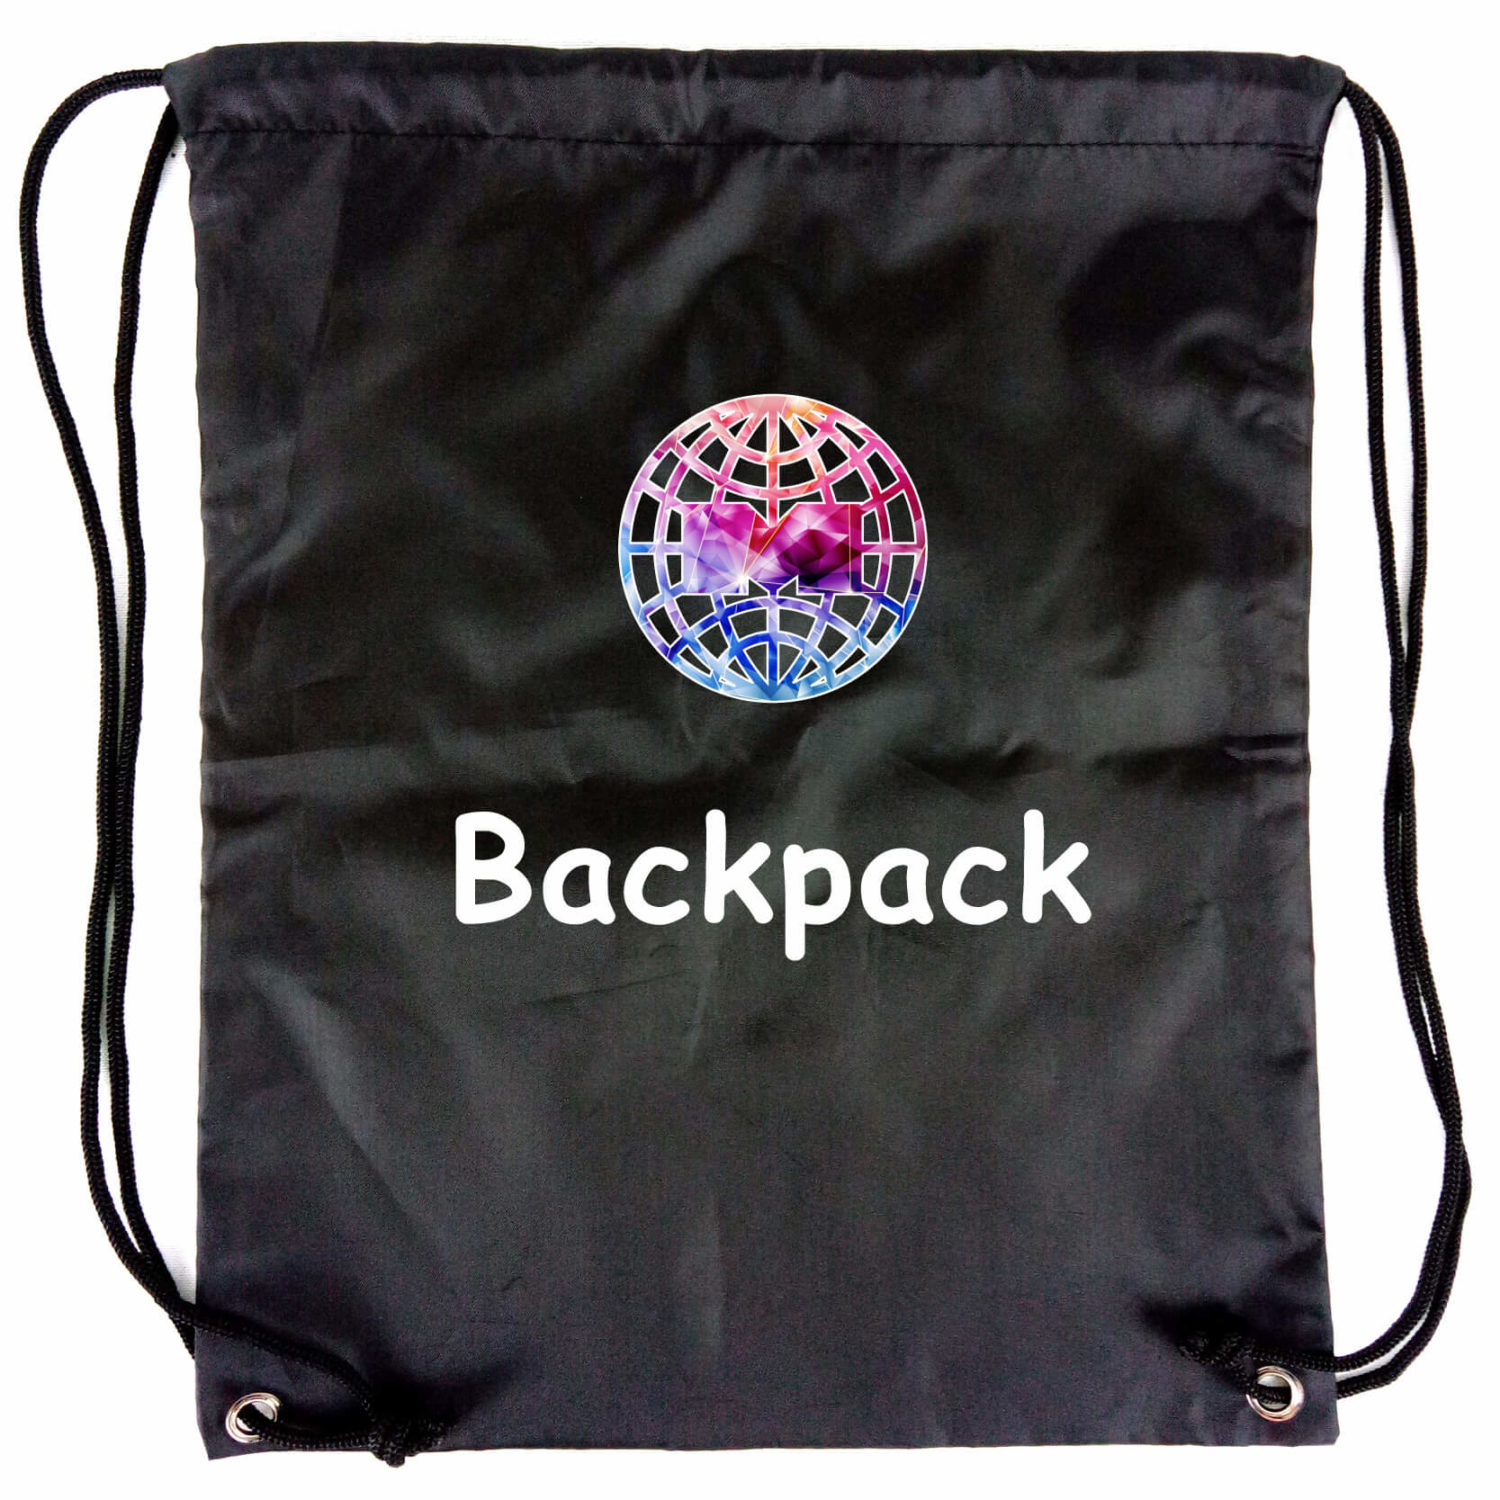 S-Backpack